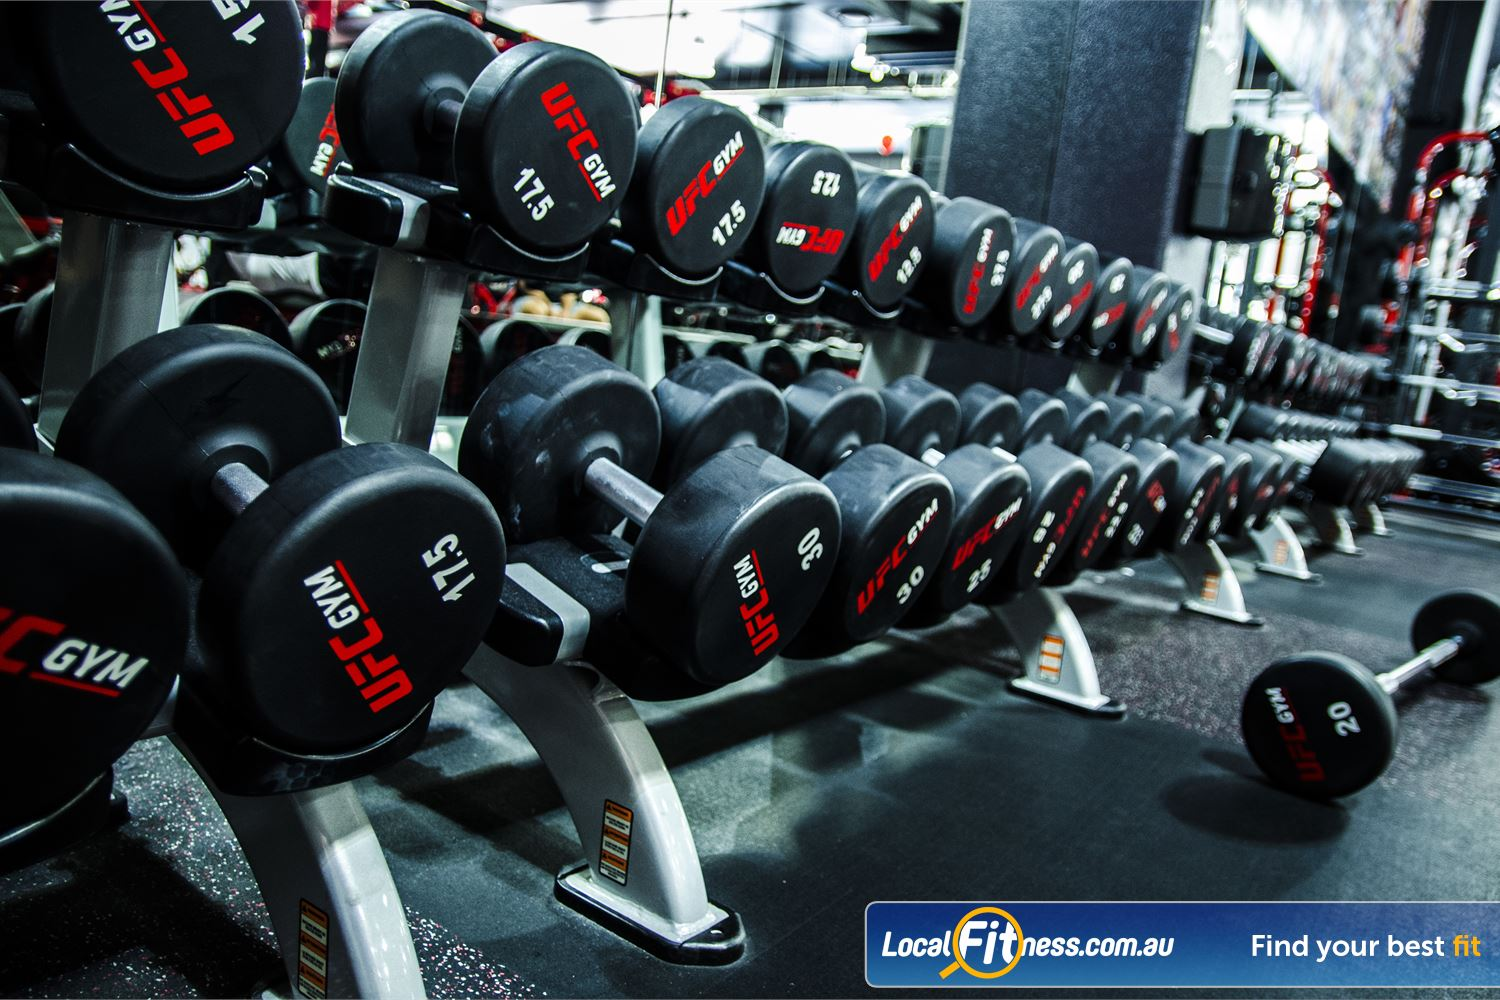 UFC Gym Near Doonside Train like a UFC athlete and get strong in our free-weights area.